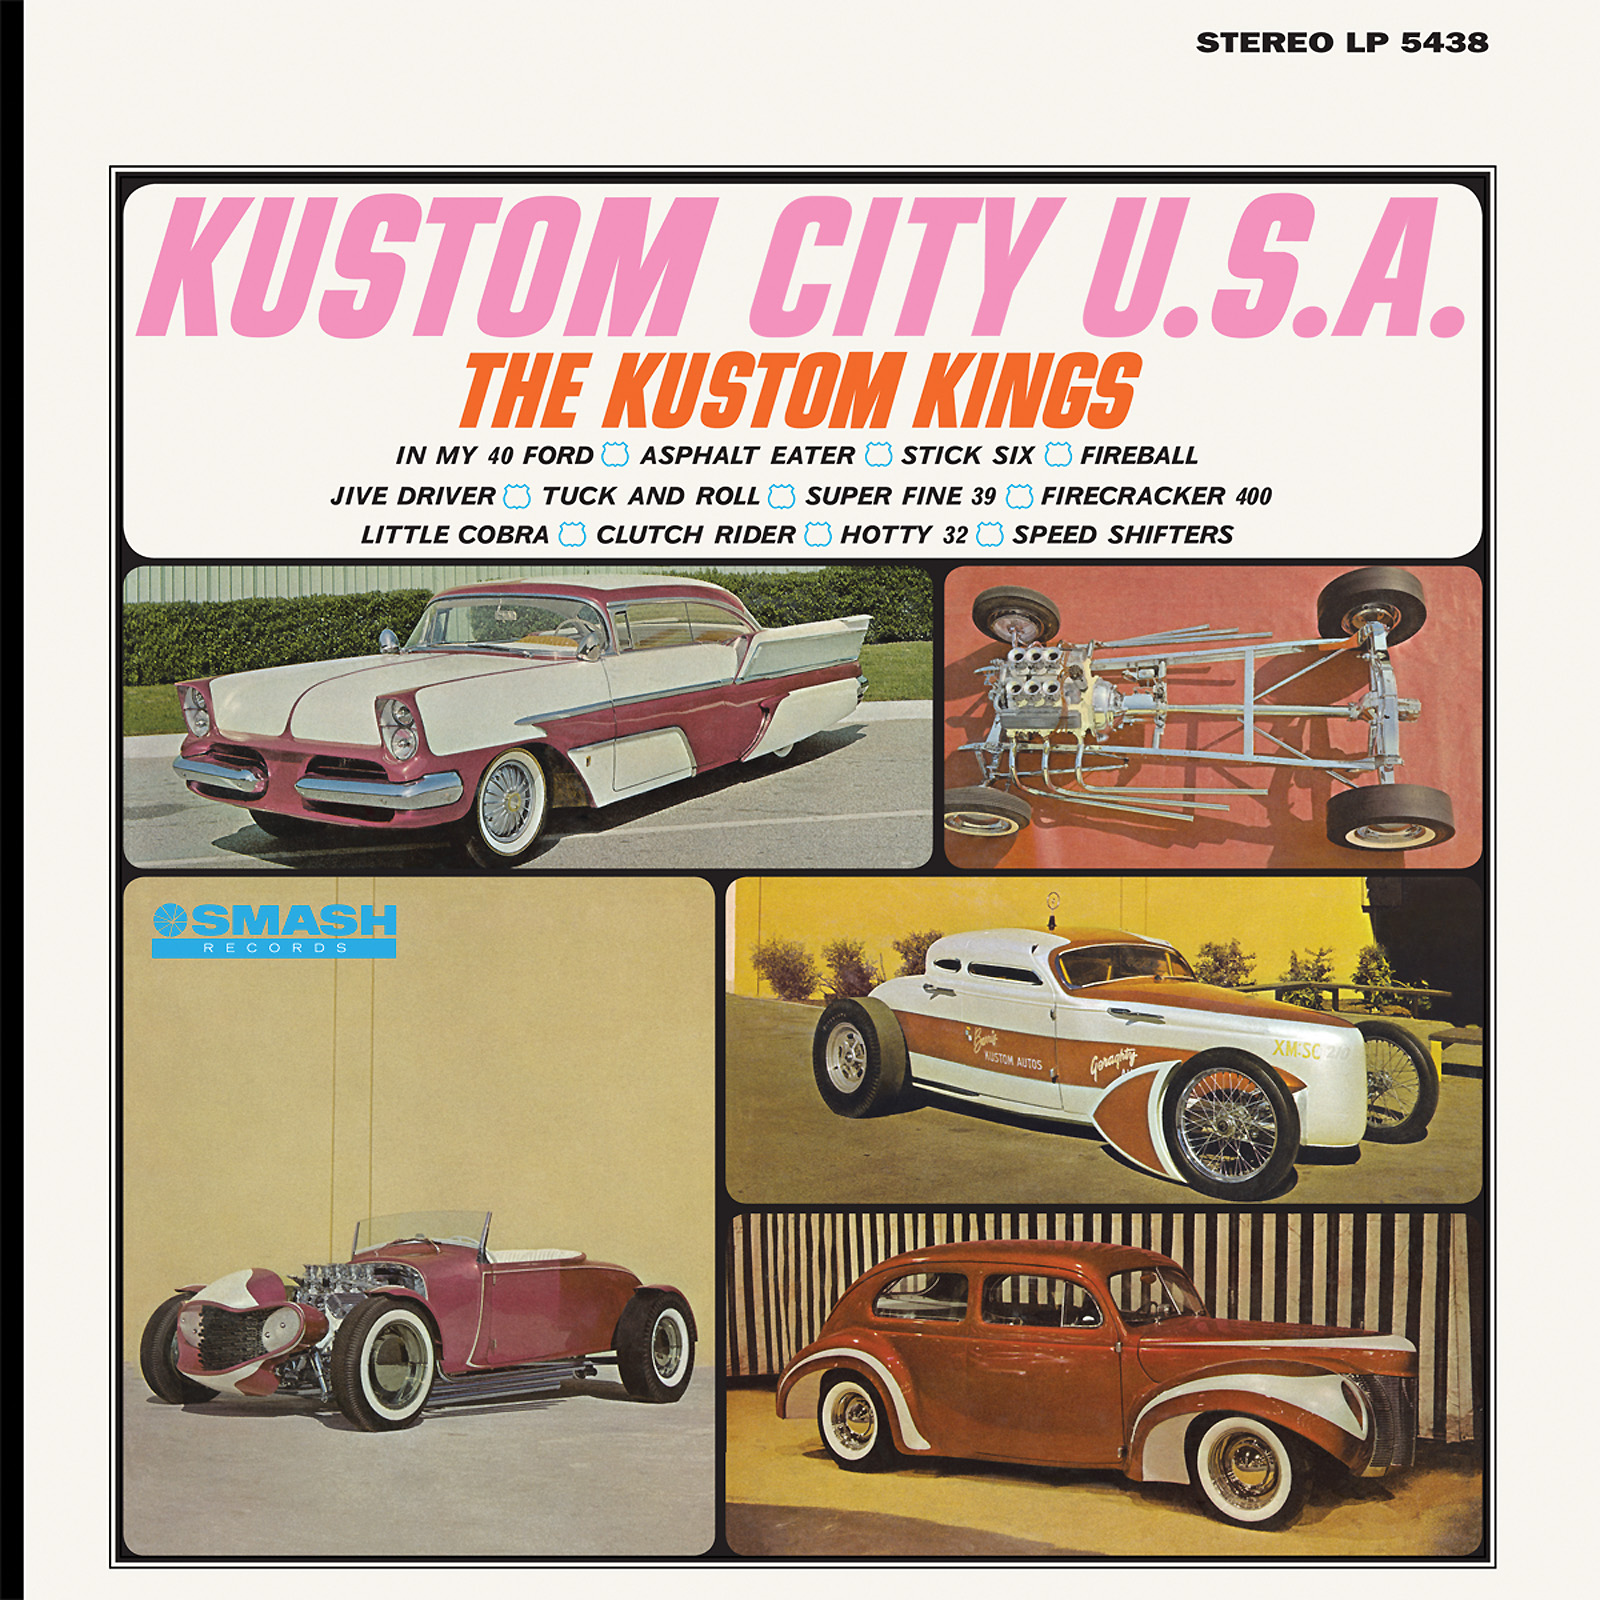 Kustom Kings, The (1964) - Kustom City U.S.A. LP